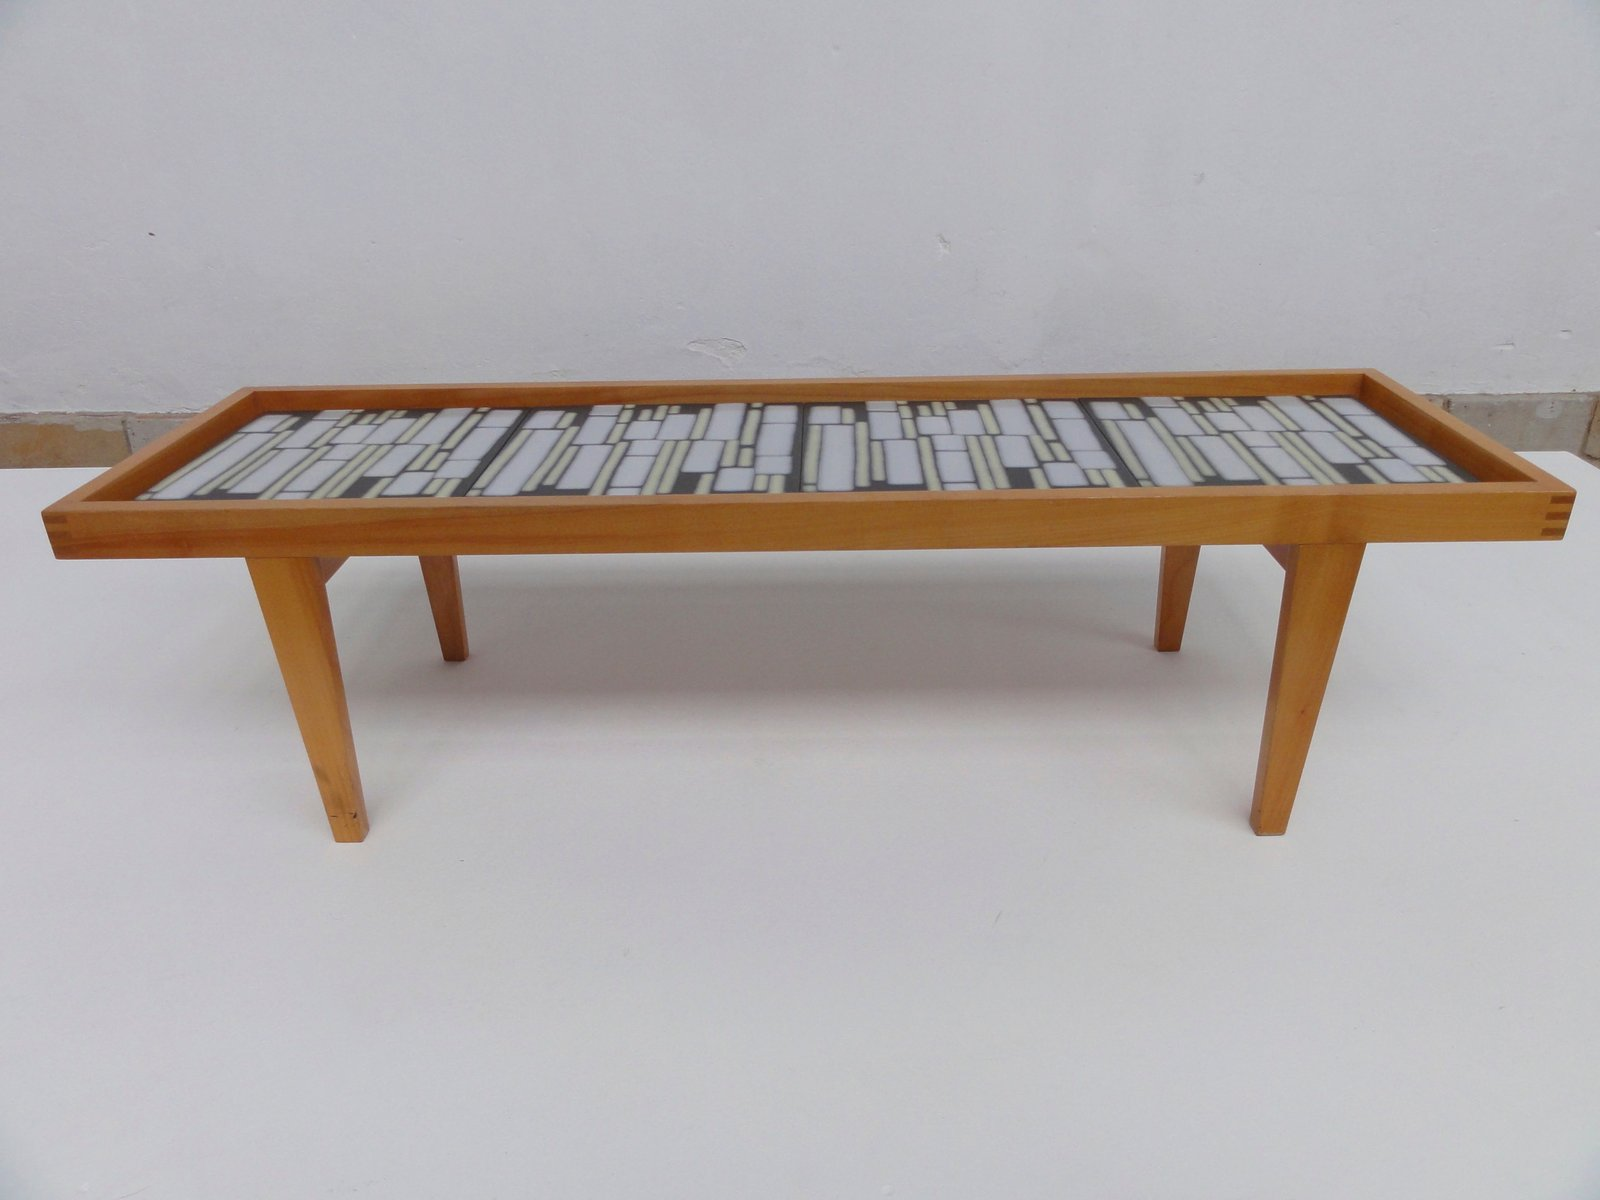 German Mid Century Ceramic Tile Coffee Table for sale at Pamono